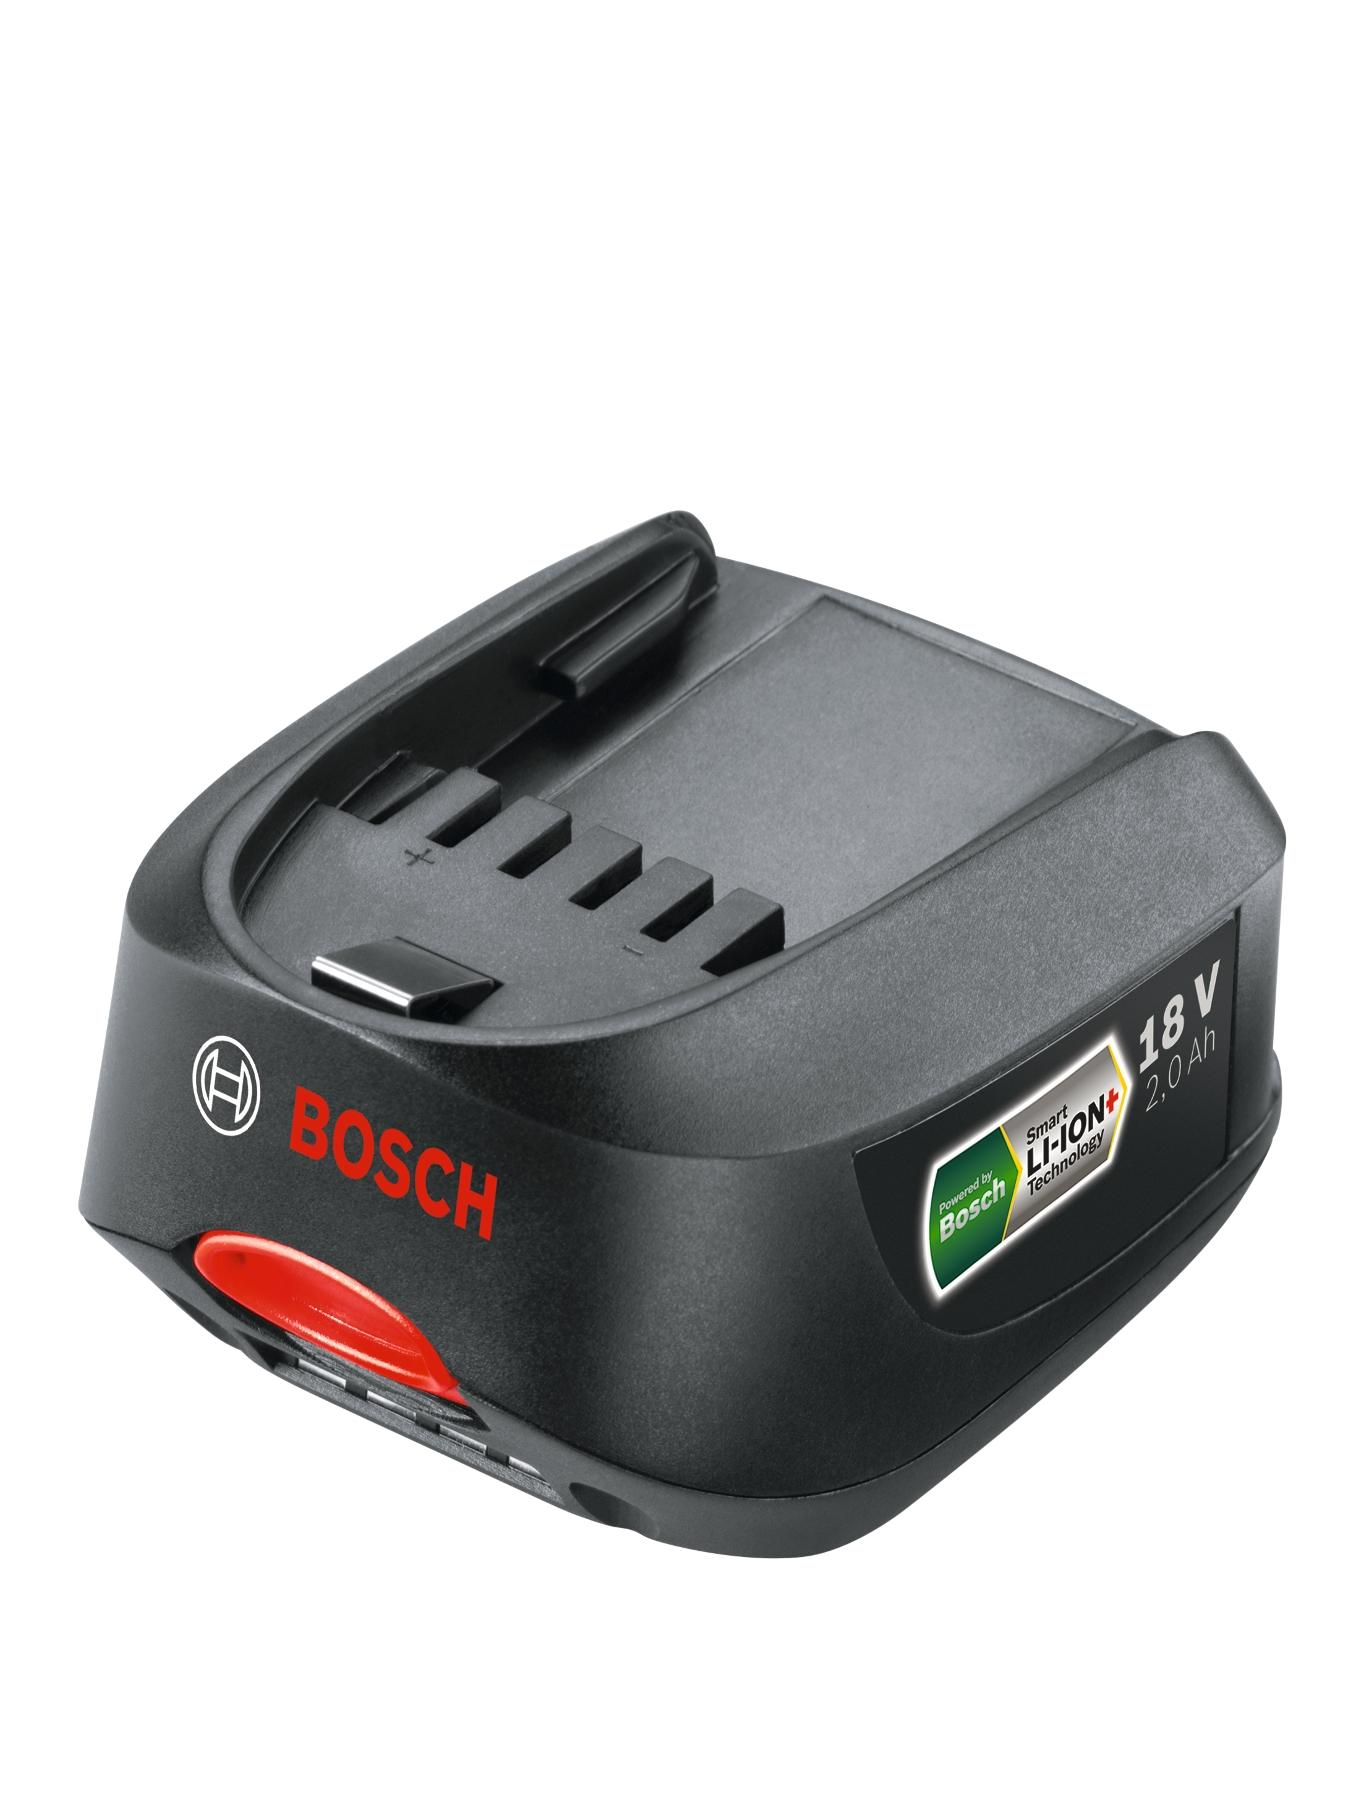 Bosch 18 Volt Battery 2.0 Ah